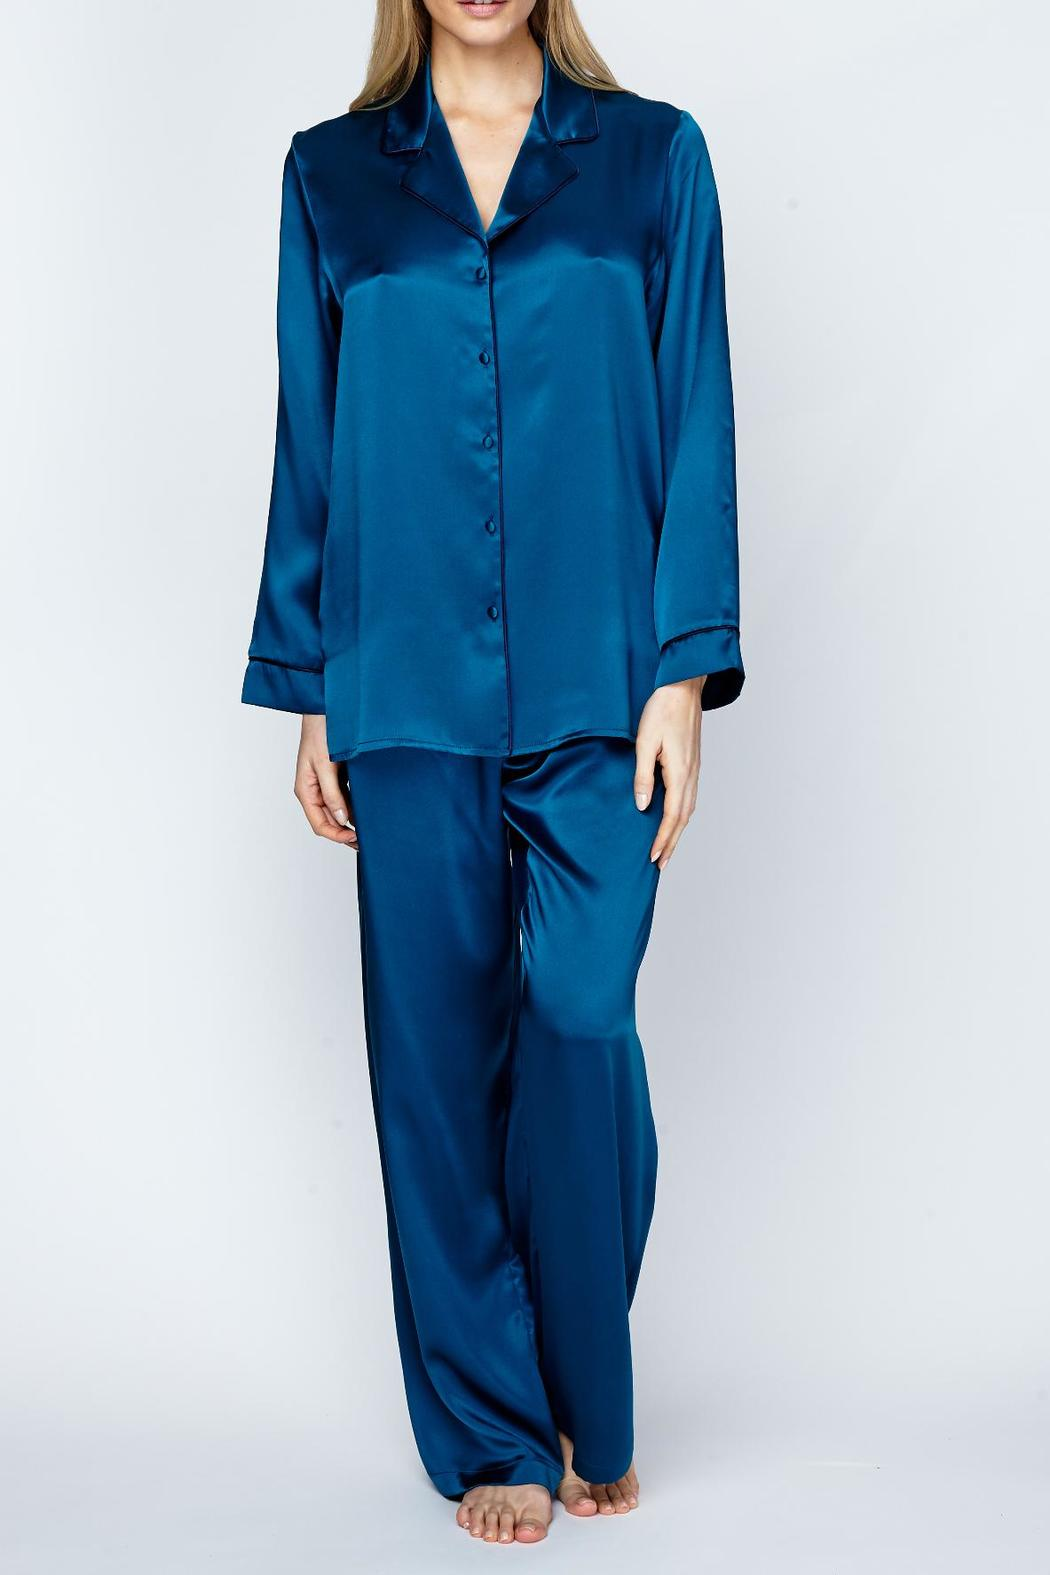 Christine Of Vancouver Classic Silk Pajamas From Canada By